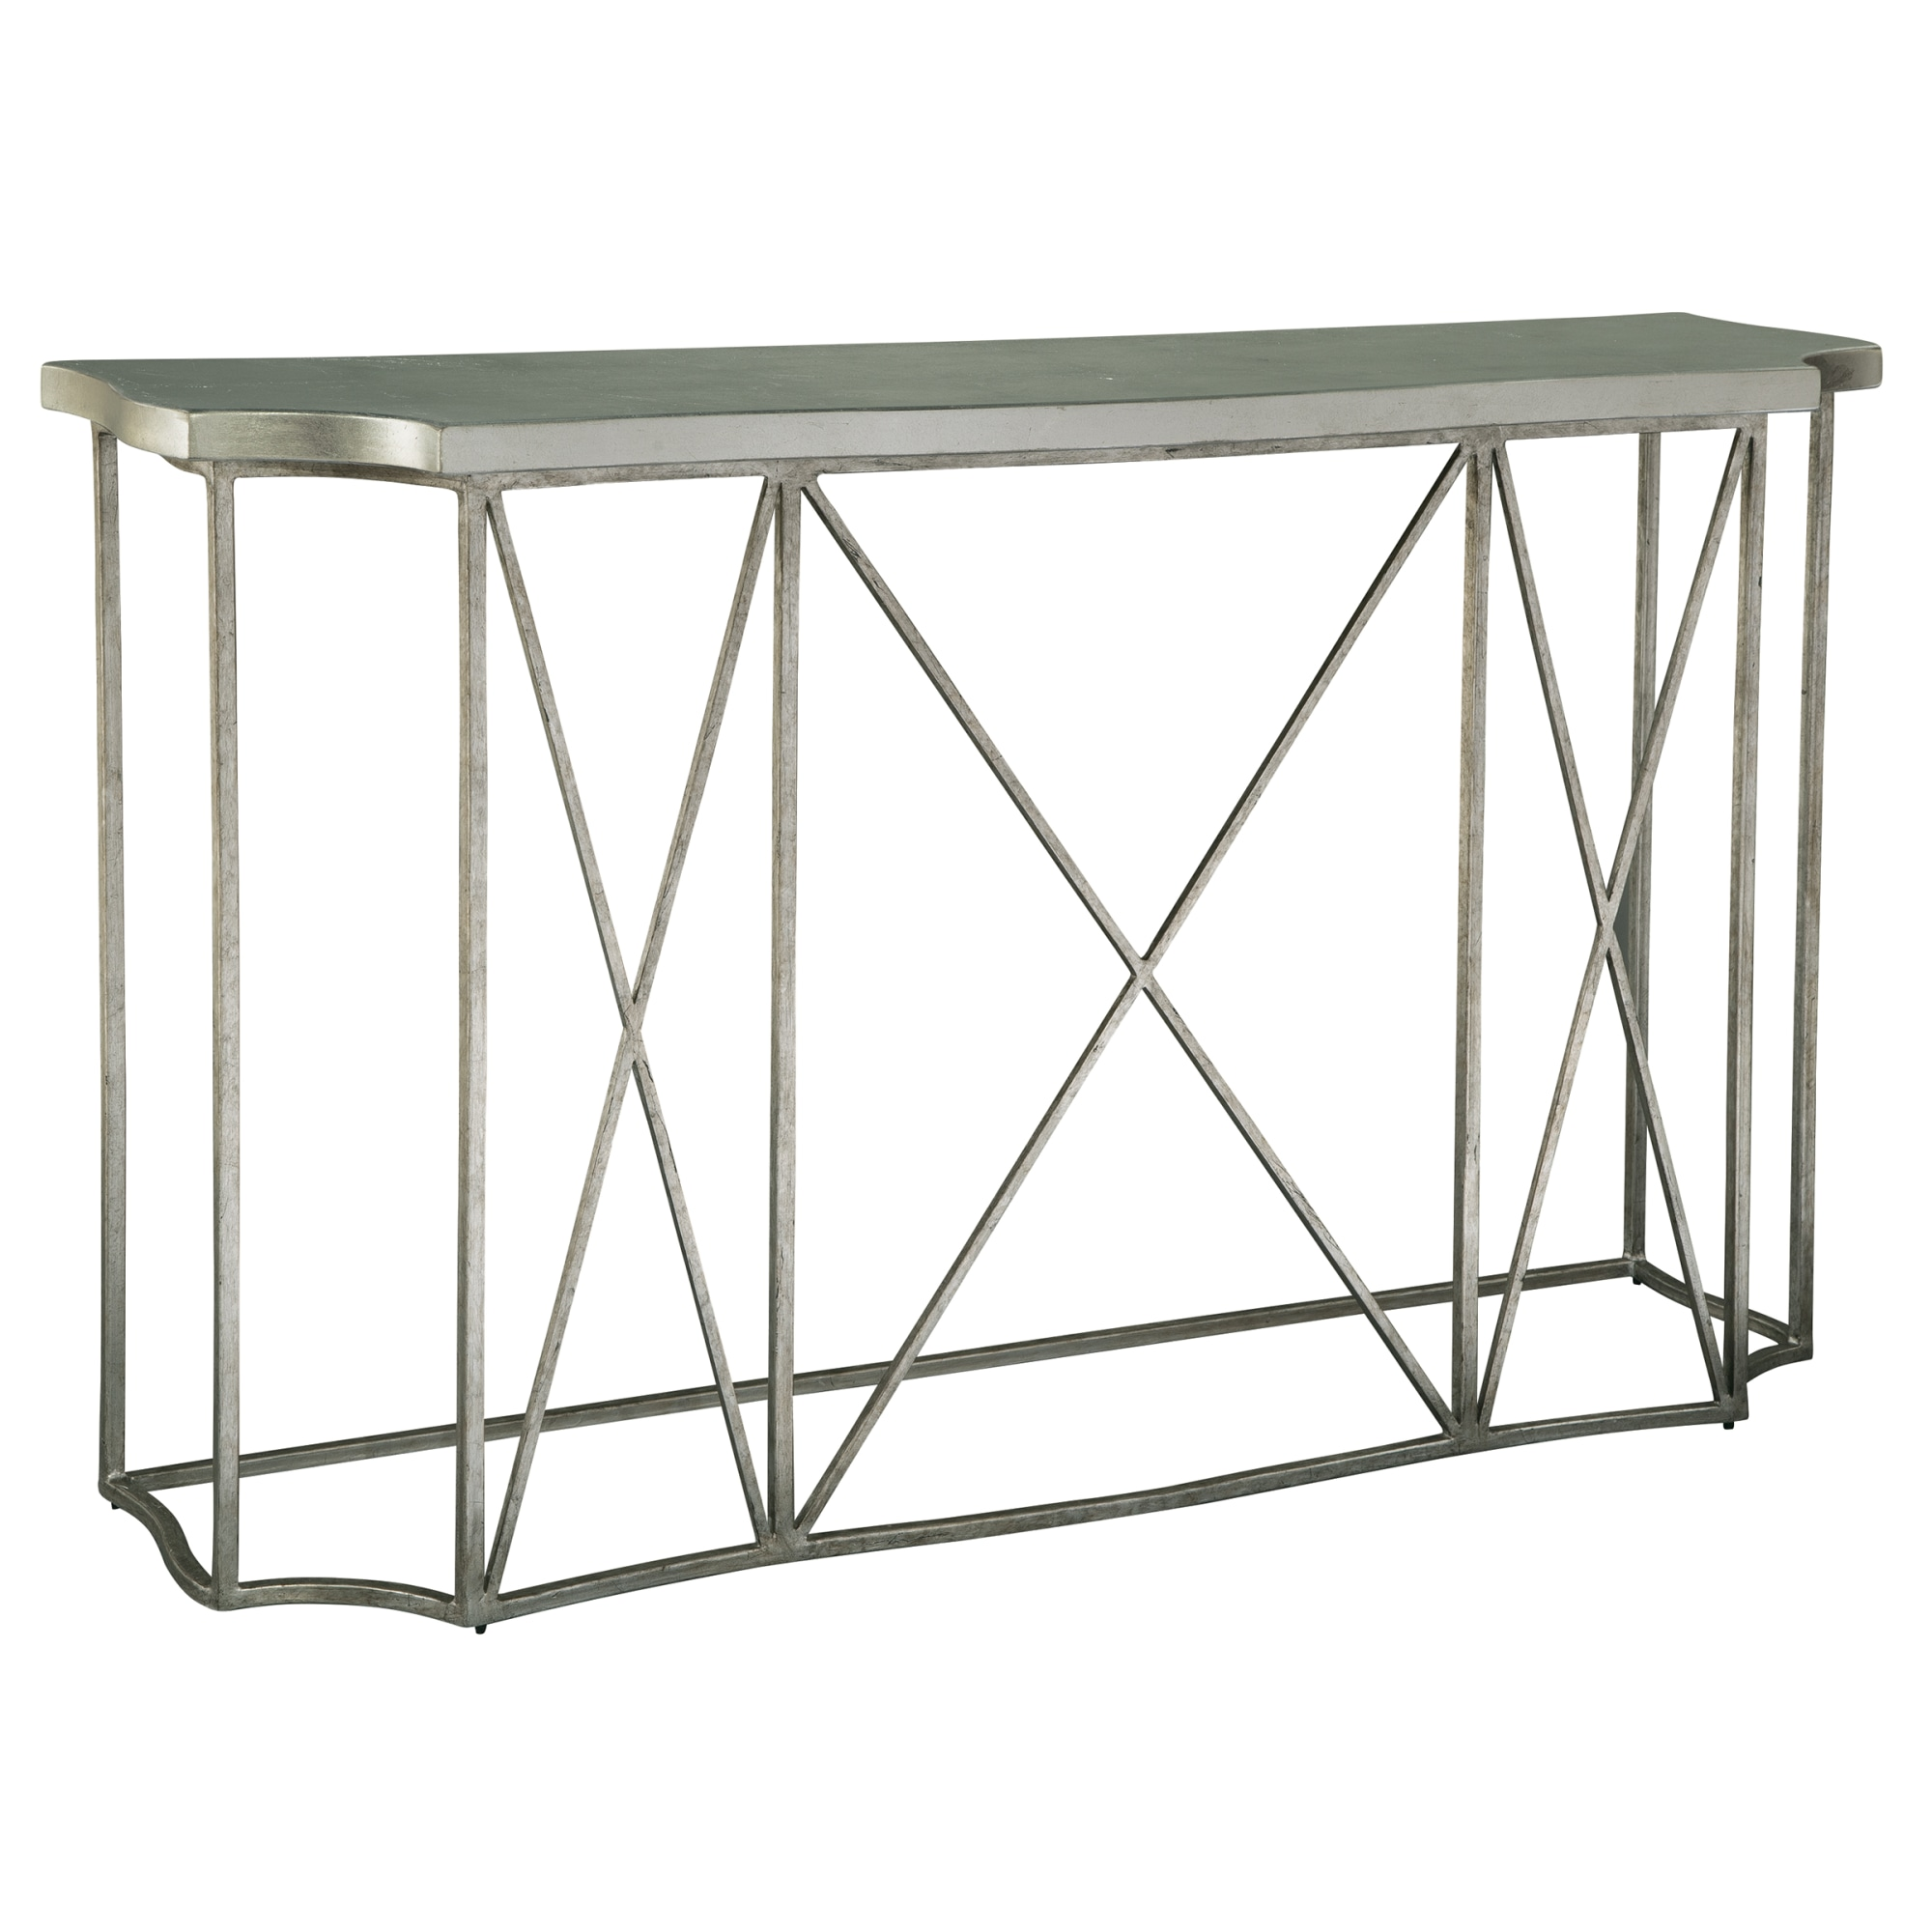 Image for 2-7601 Console Table with Metal Base from Hekman Official Website